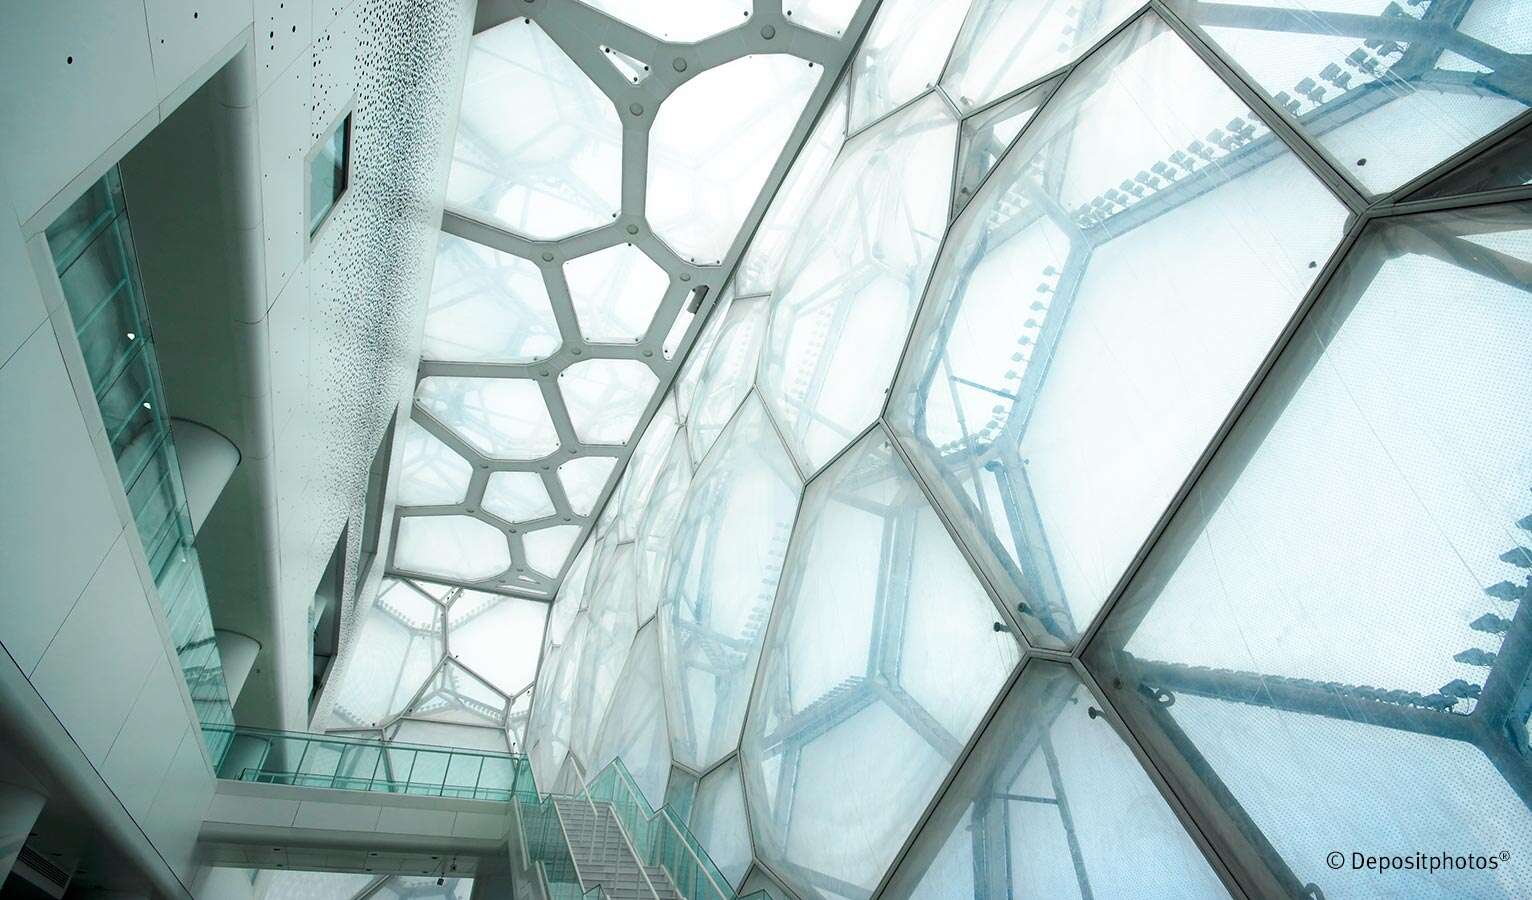 Parametric design enables organic shapes to be implemented for buildings